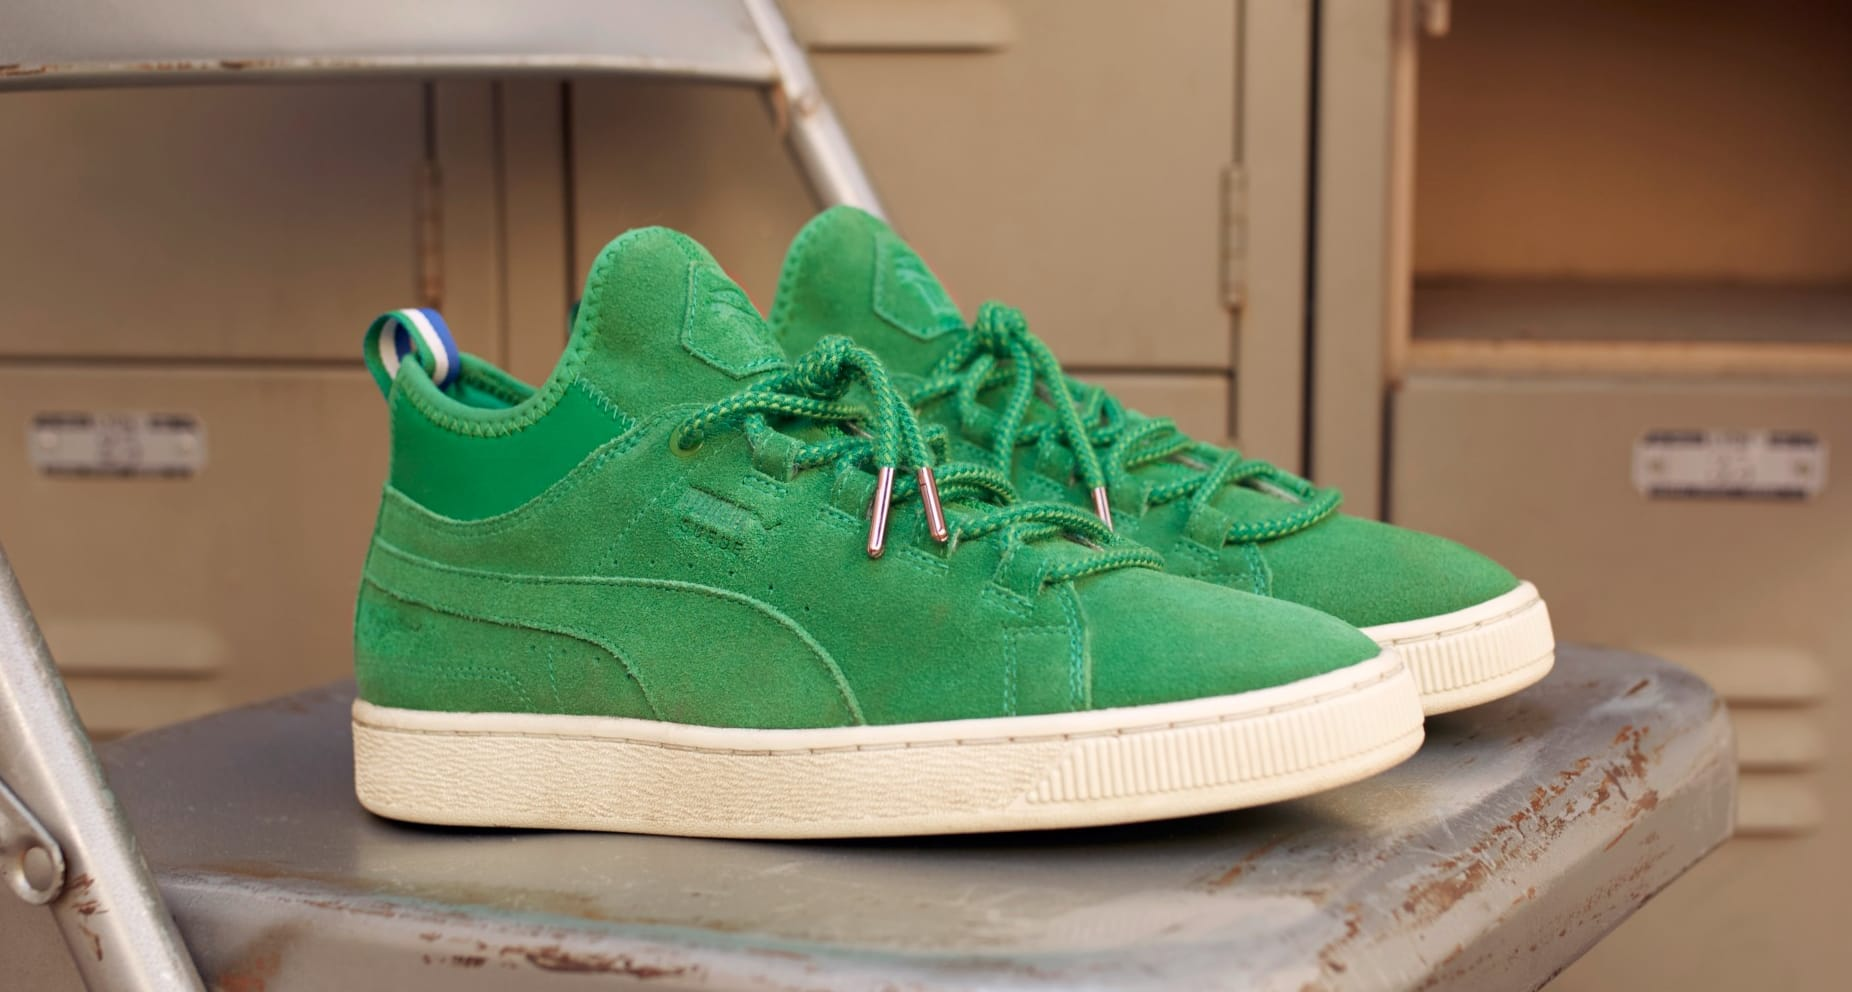 Big Sean x Puma Suede Mid 'Jelly Bean'